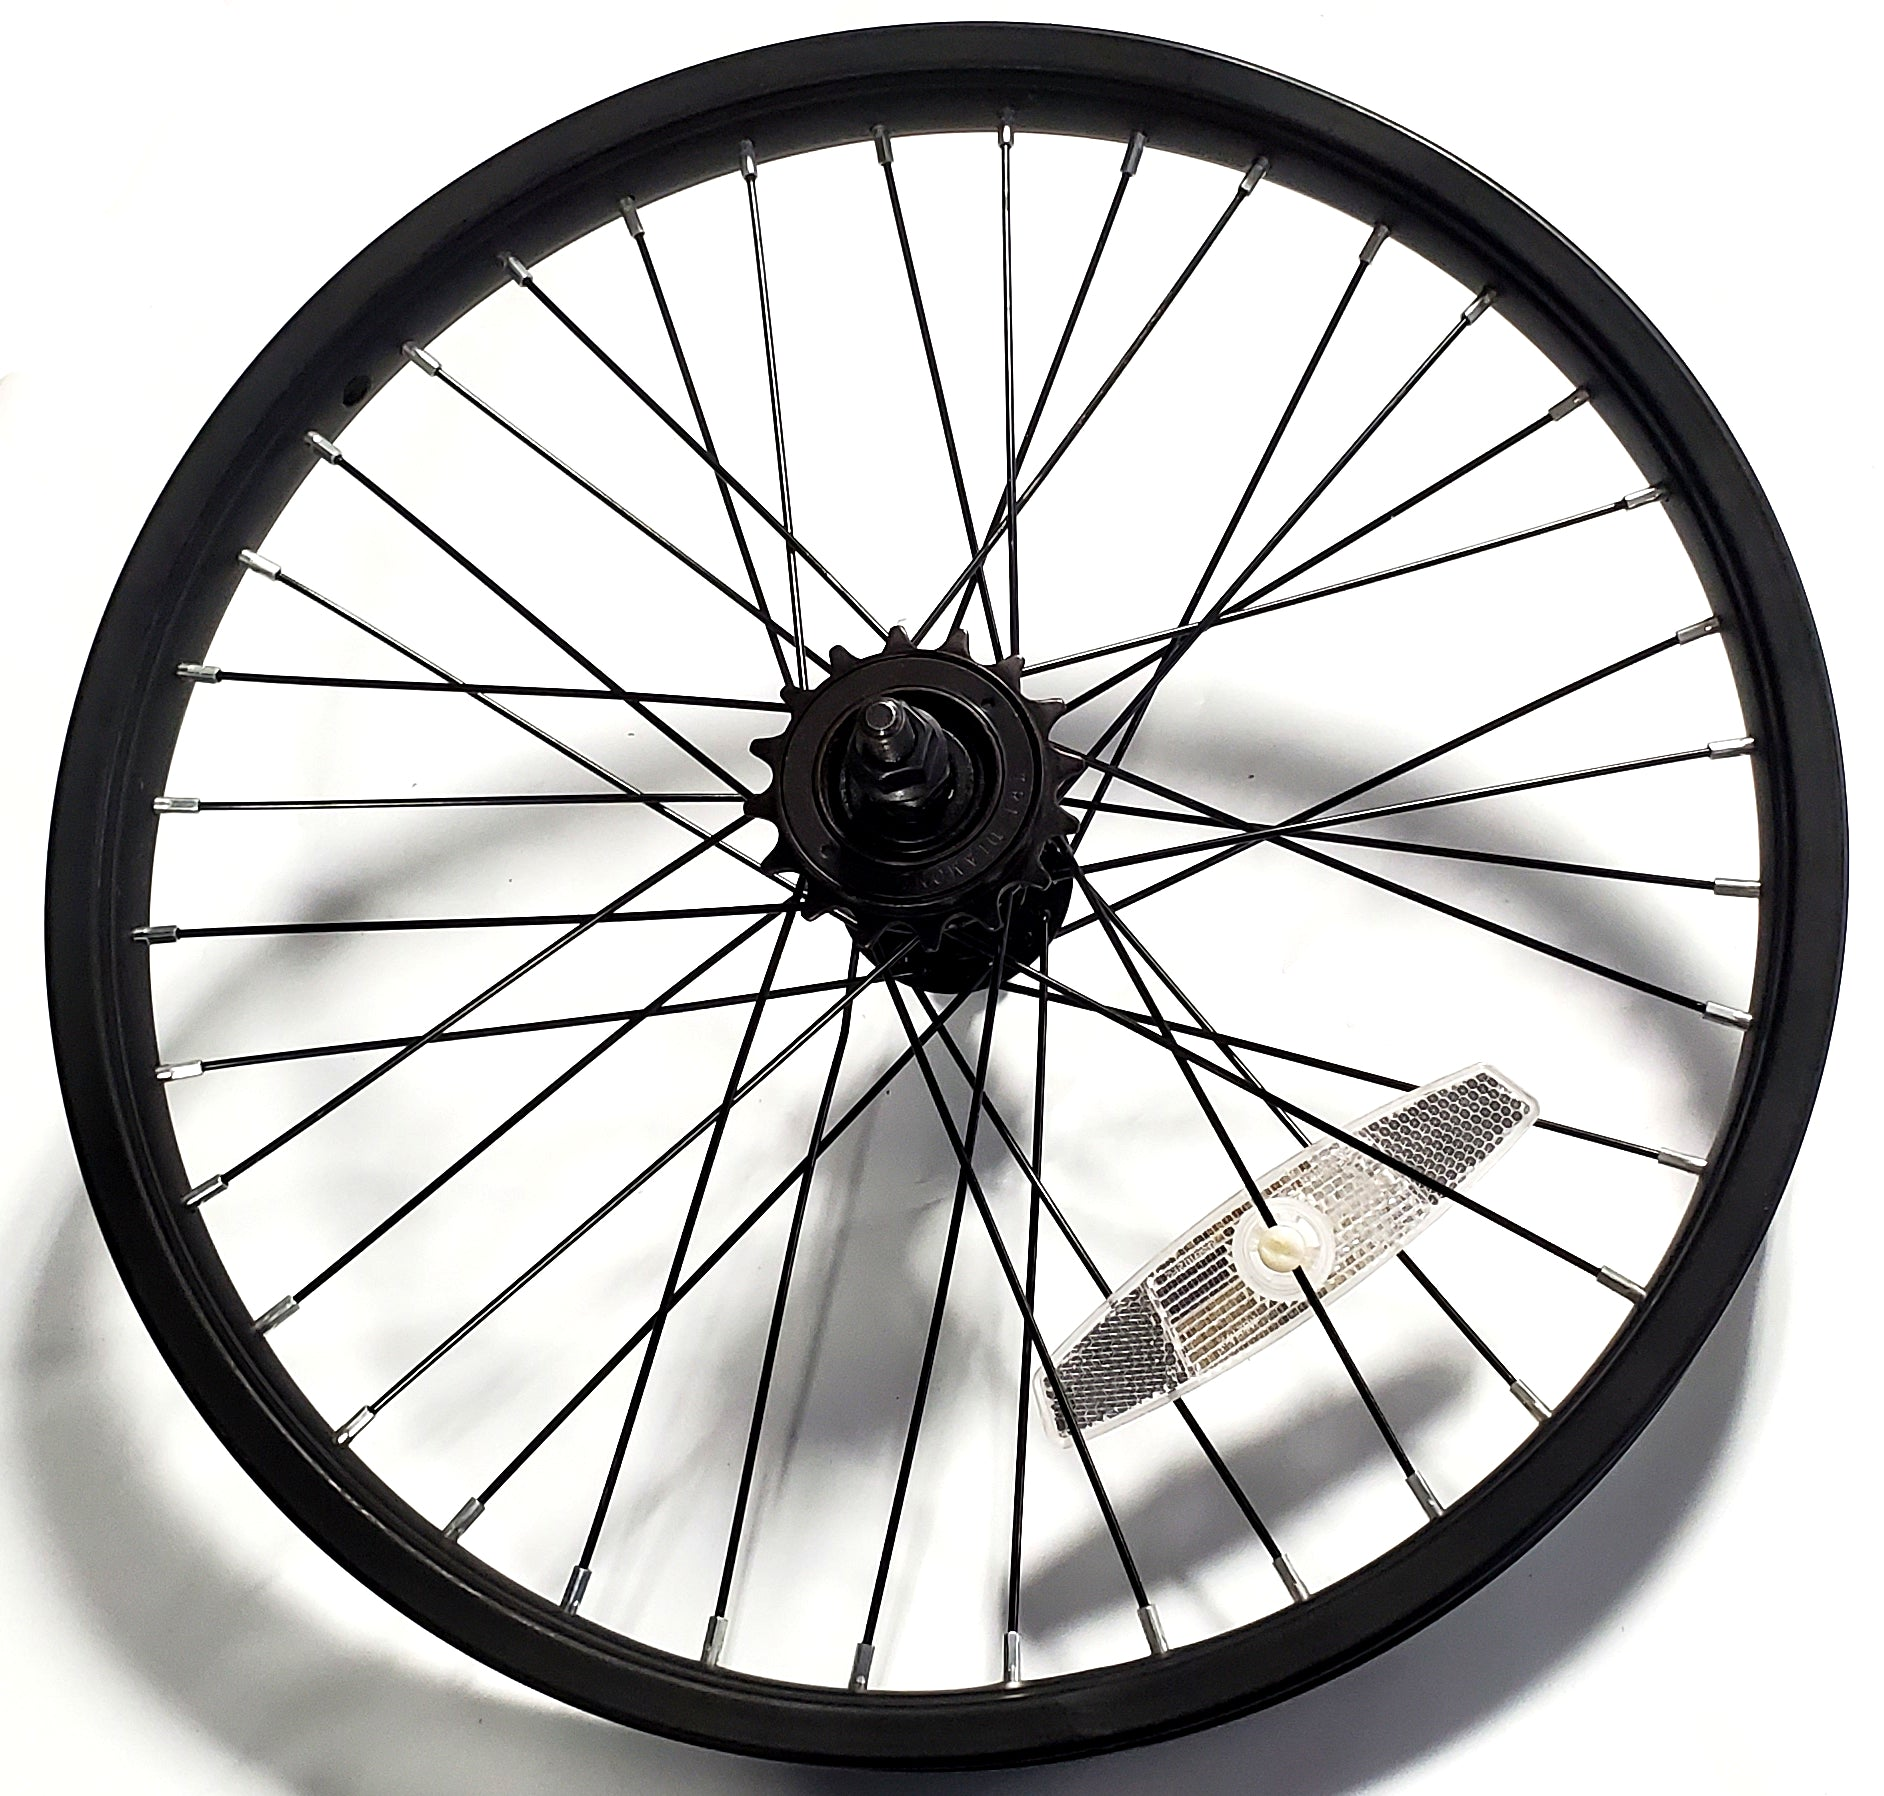 "18"" Steel BMX Rear Wheel - 36H - 3/8"" axle w/ 16t Freewheel - Kent Next Avigo OEM - Black"